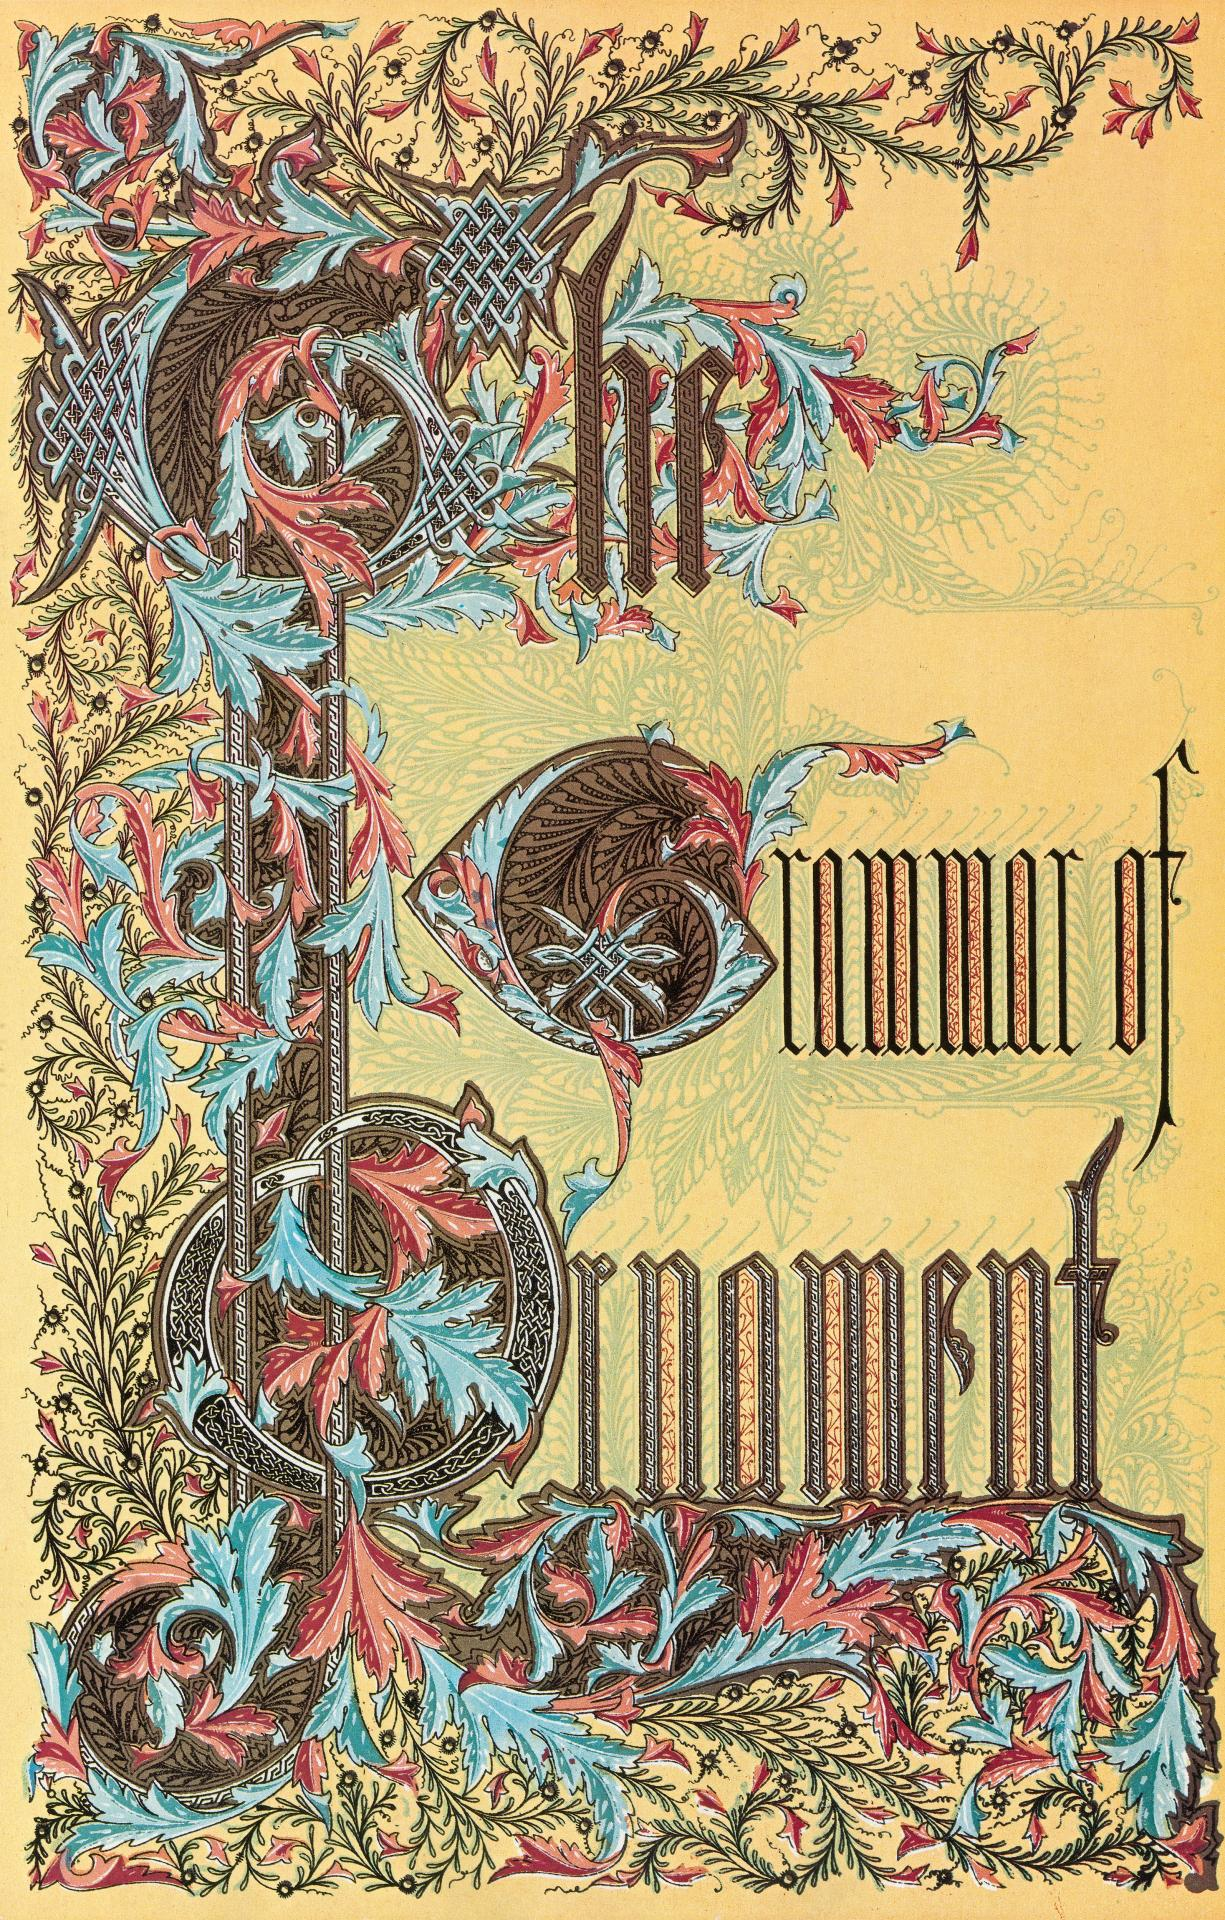 Owen Jones Grammar of Ornament 1856, reprinted 1972